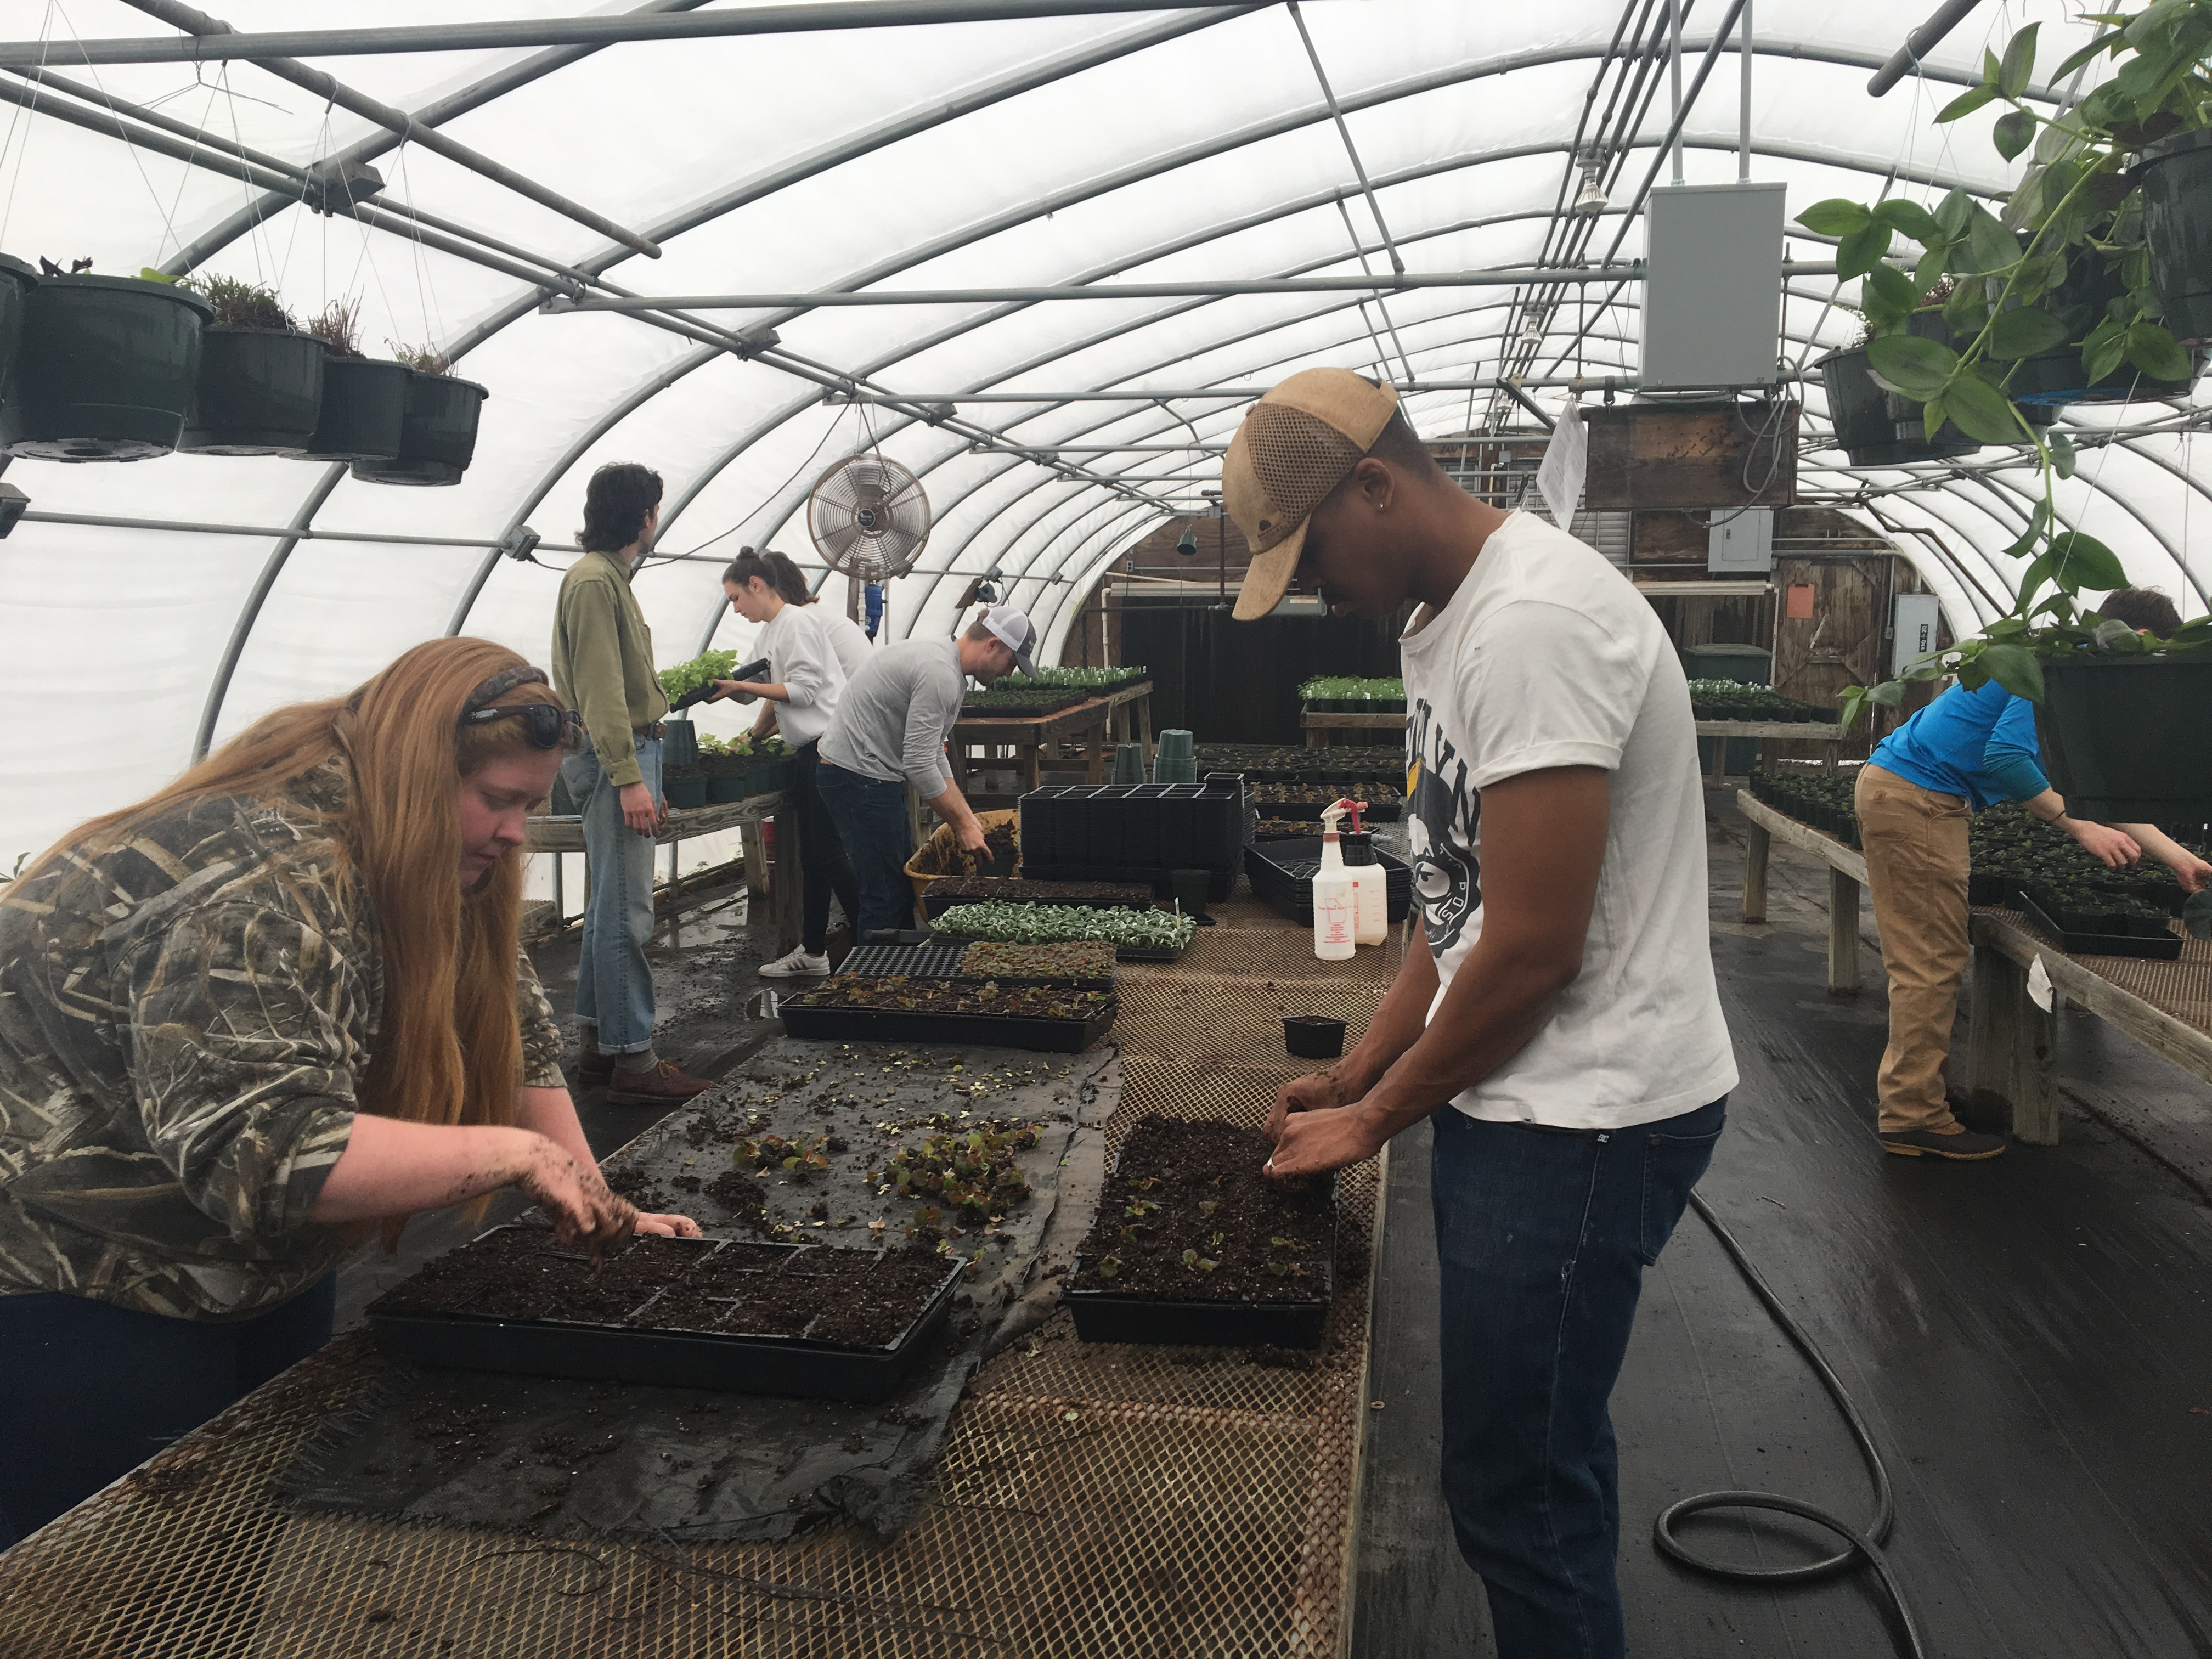 University of Georgia Horticulture Club students prepare for their 2019 Spring Plant Sale. The sale, April 6-8 and April 12-15, will take place at the corner of Riverbend Road and College Station Roads from 8 a.m. to 5 p.m. on Fridays and Saturdays at noon to 5 p.m. on Sundays.